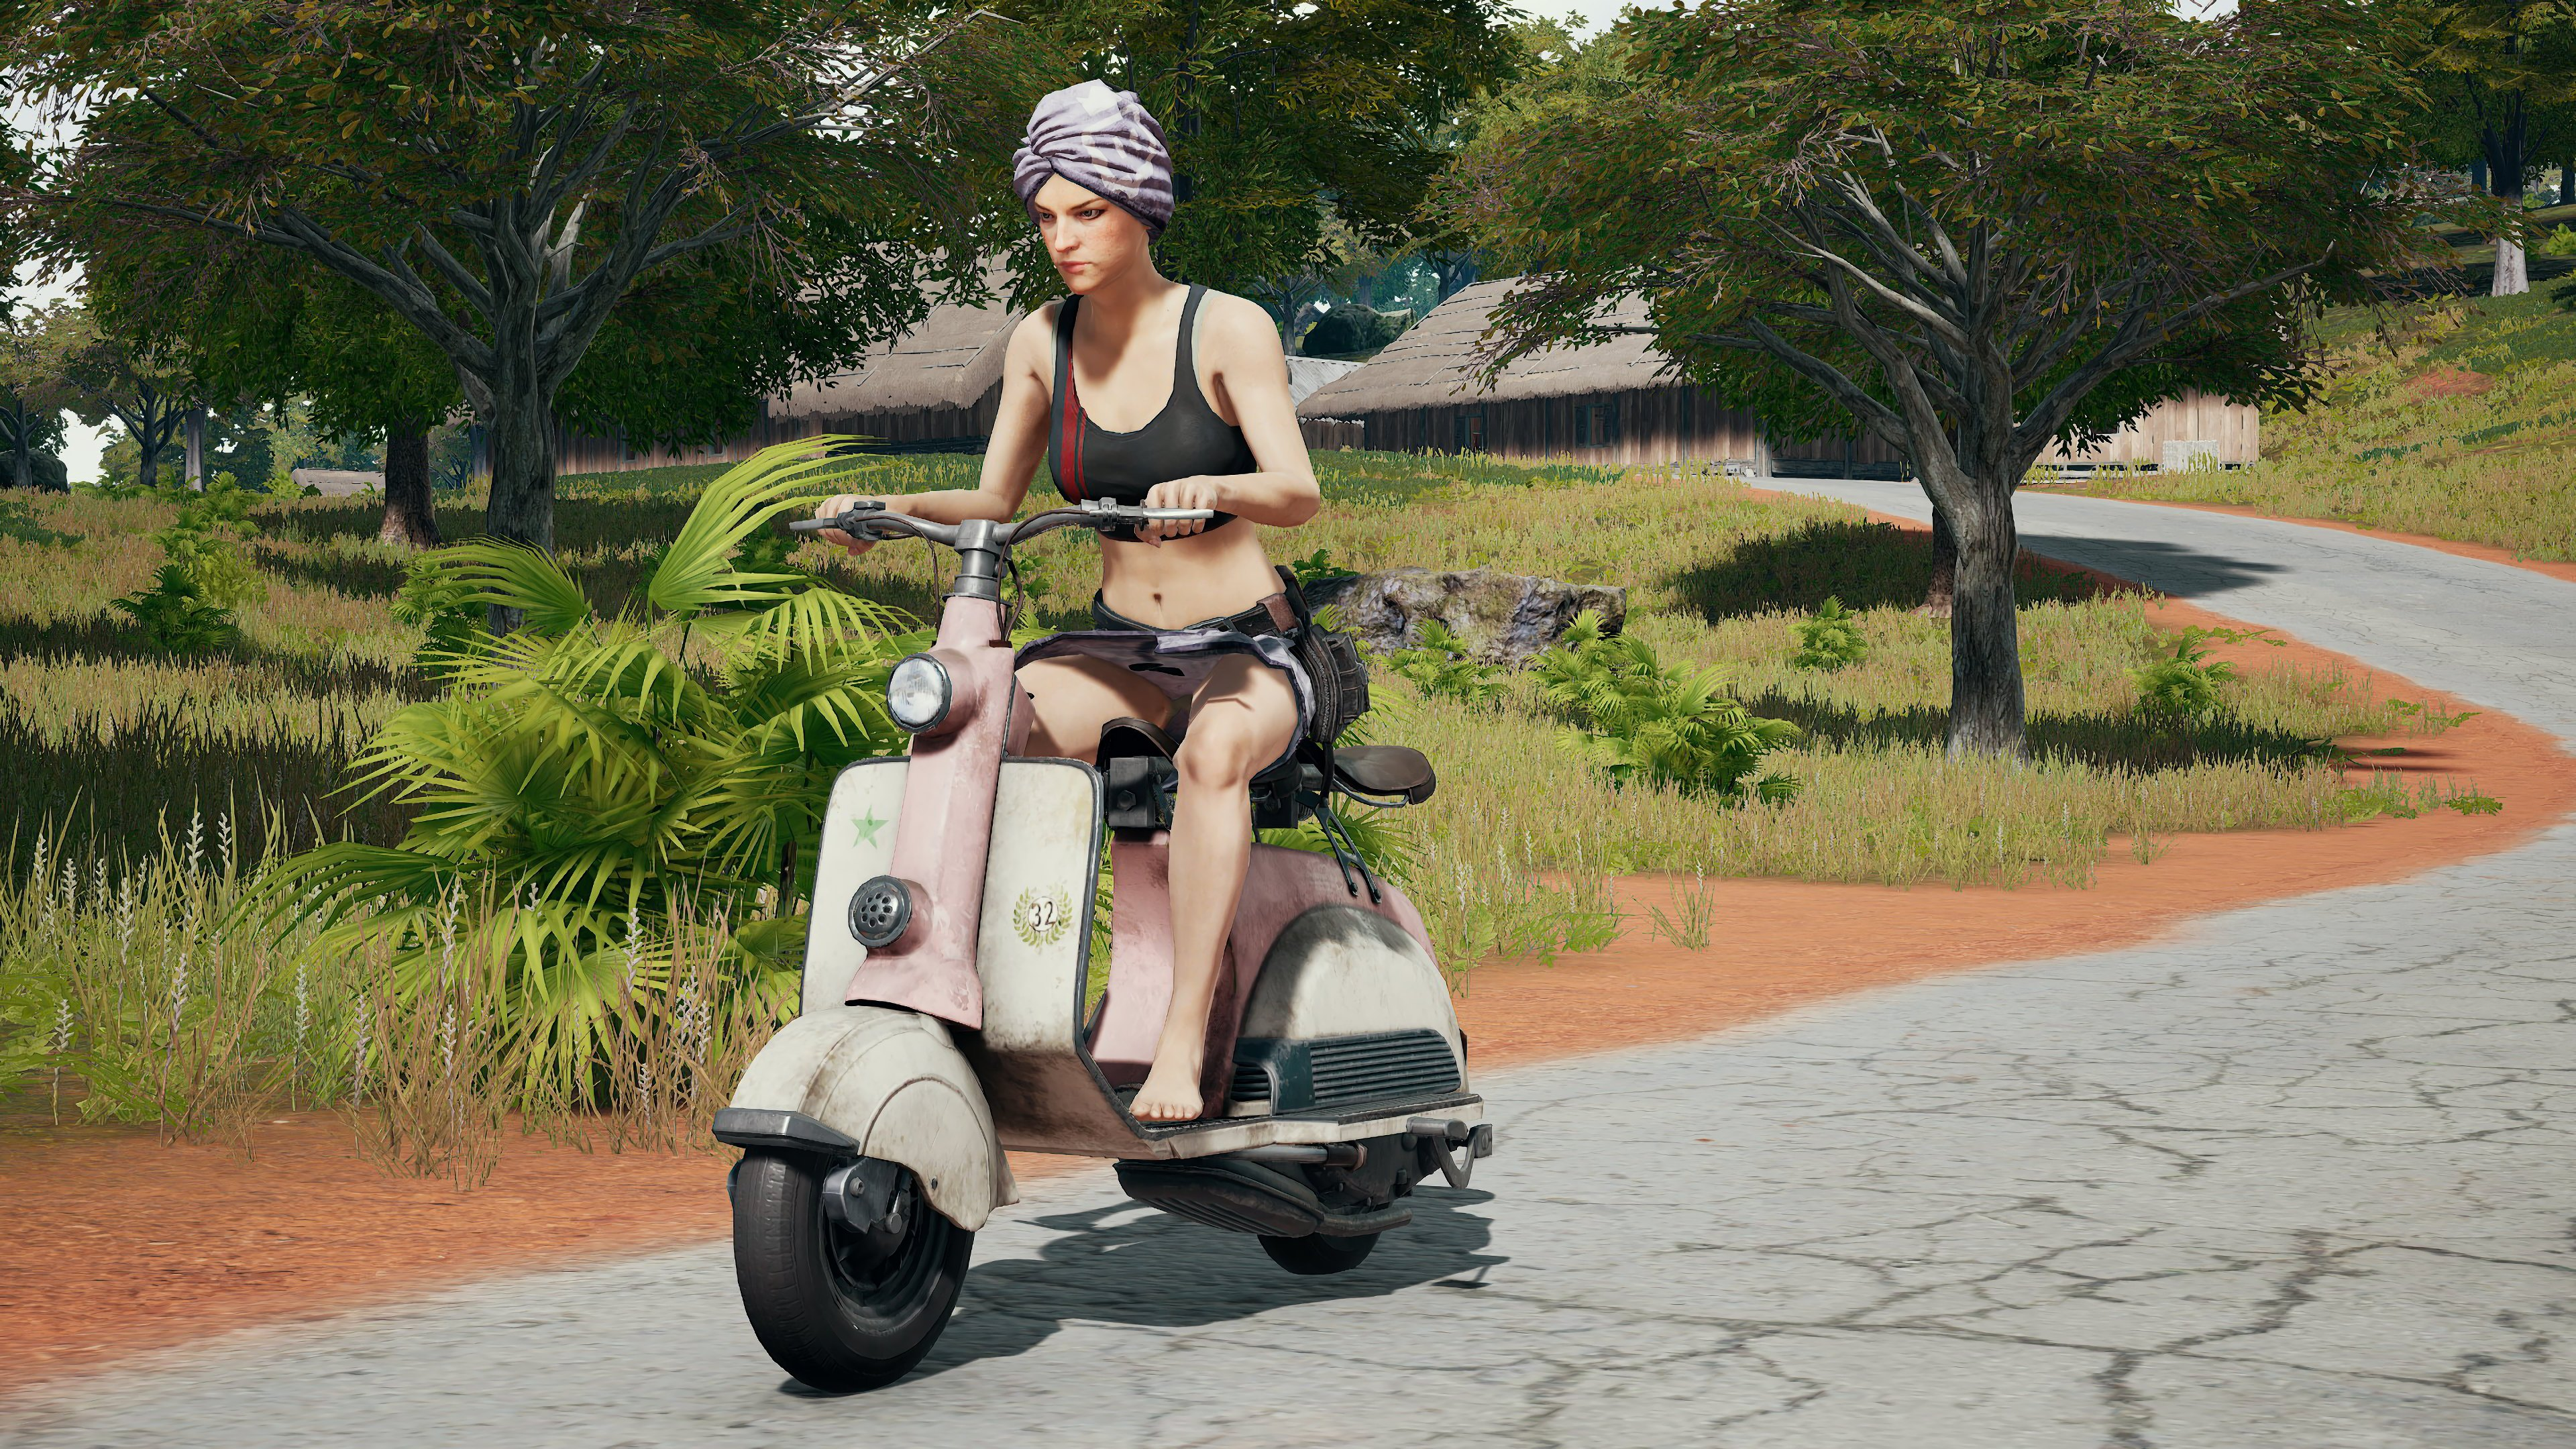 pubg scooter playerunknown s battlegrounds 4k wallpaper 1544827544 - PUBG Scooter PlayerUnknown's  Battlegrounds 4K Wallpaper - PlayerUnknown's Battlegrounds (PUBG) 4k wallpapers